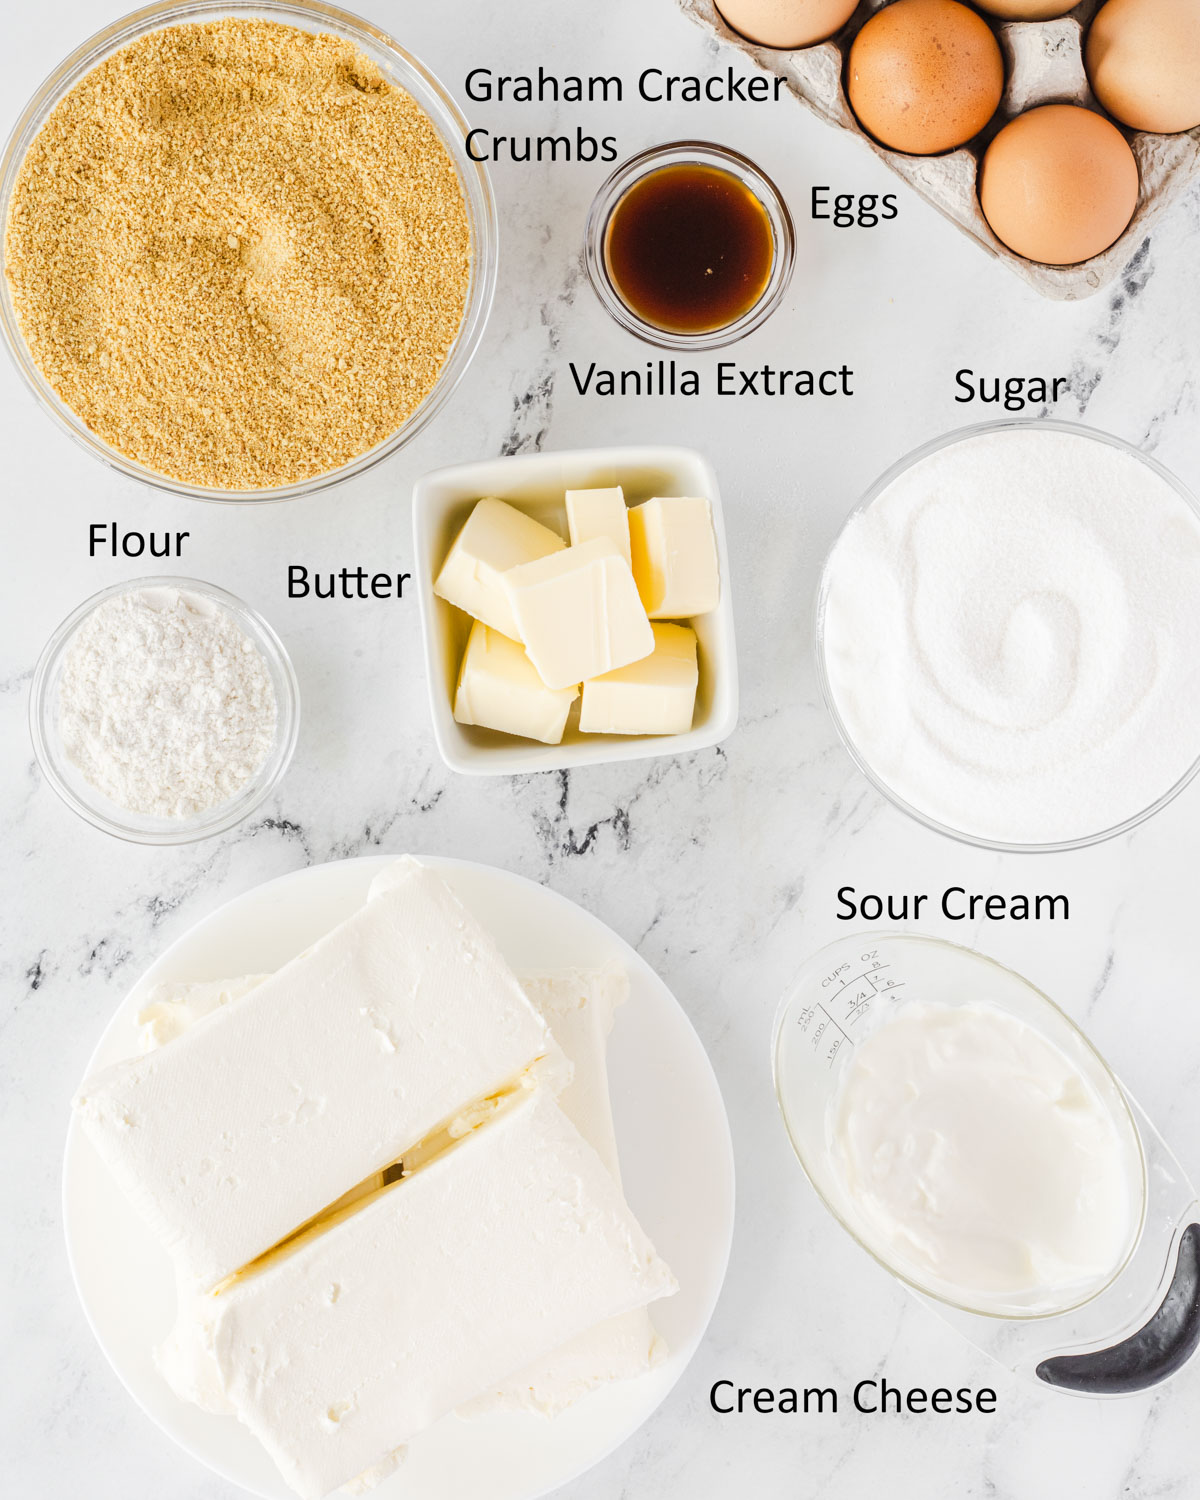 Overhead shot of labeled cheesecake ingredients.